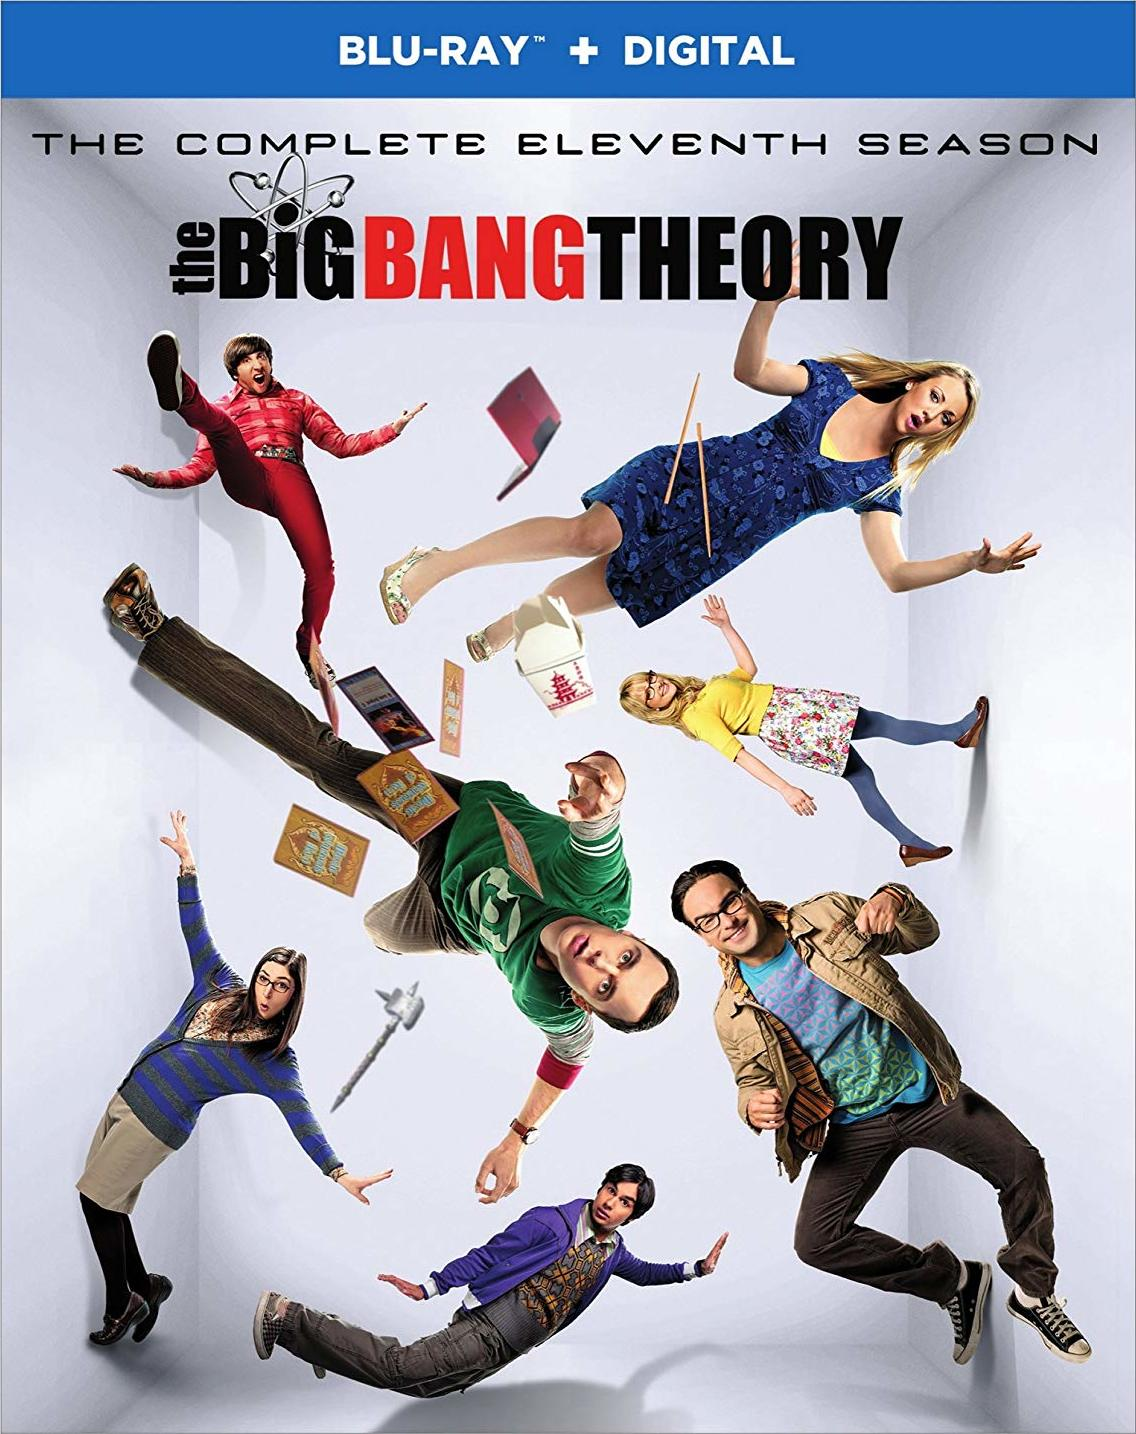 The Big Bang Theory: The Complete Eleventh Season (TV) (2017-2018) Blu-ray